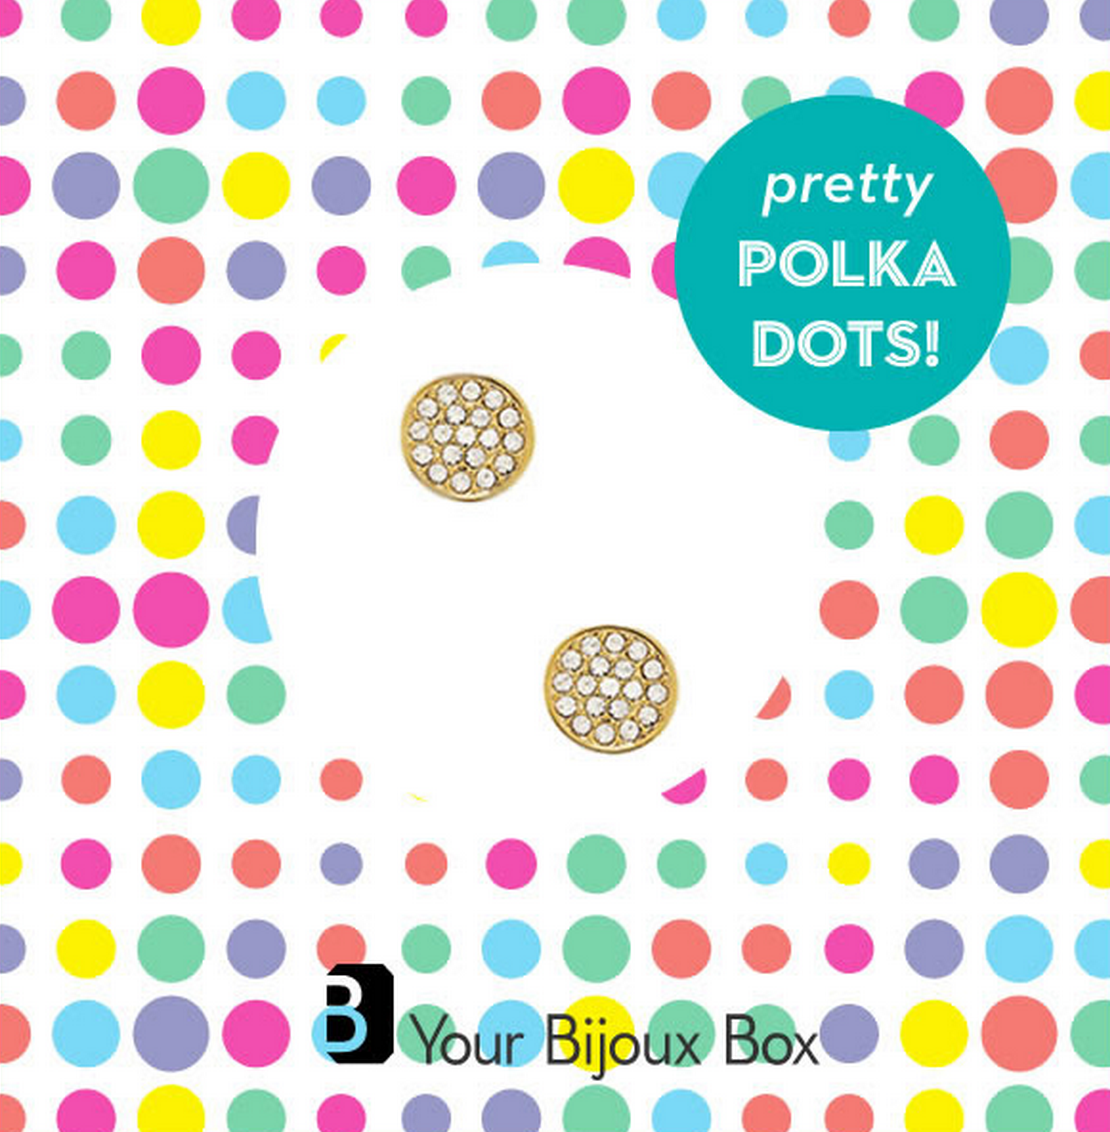 Your Bijoux Box Coupon Code – Free Earrings!